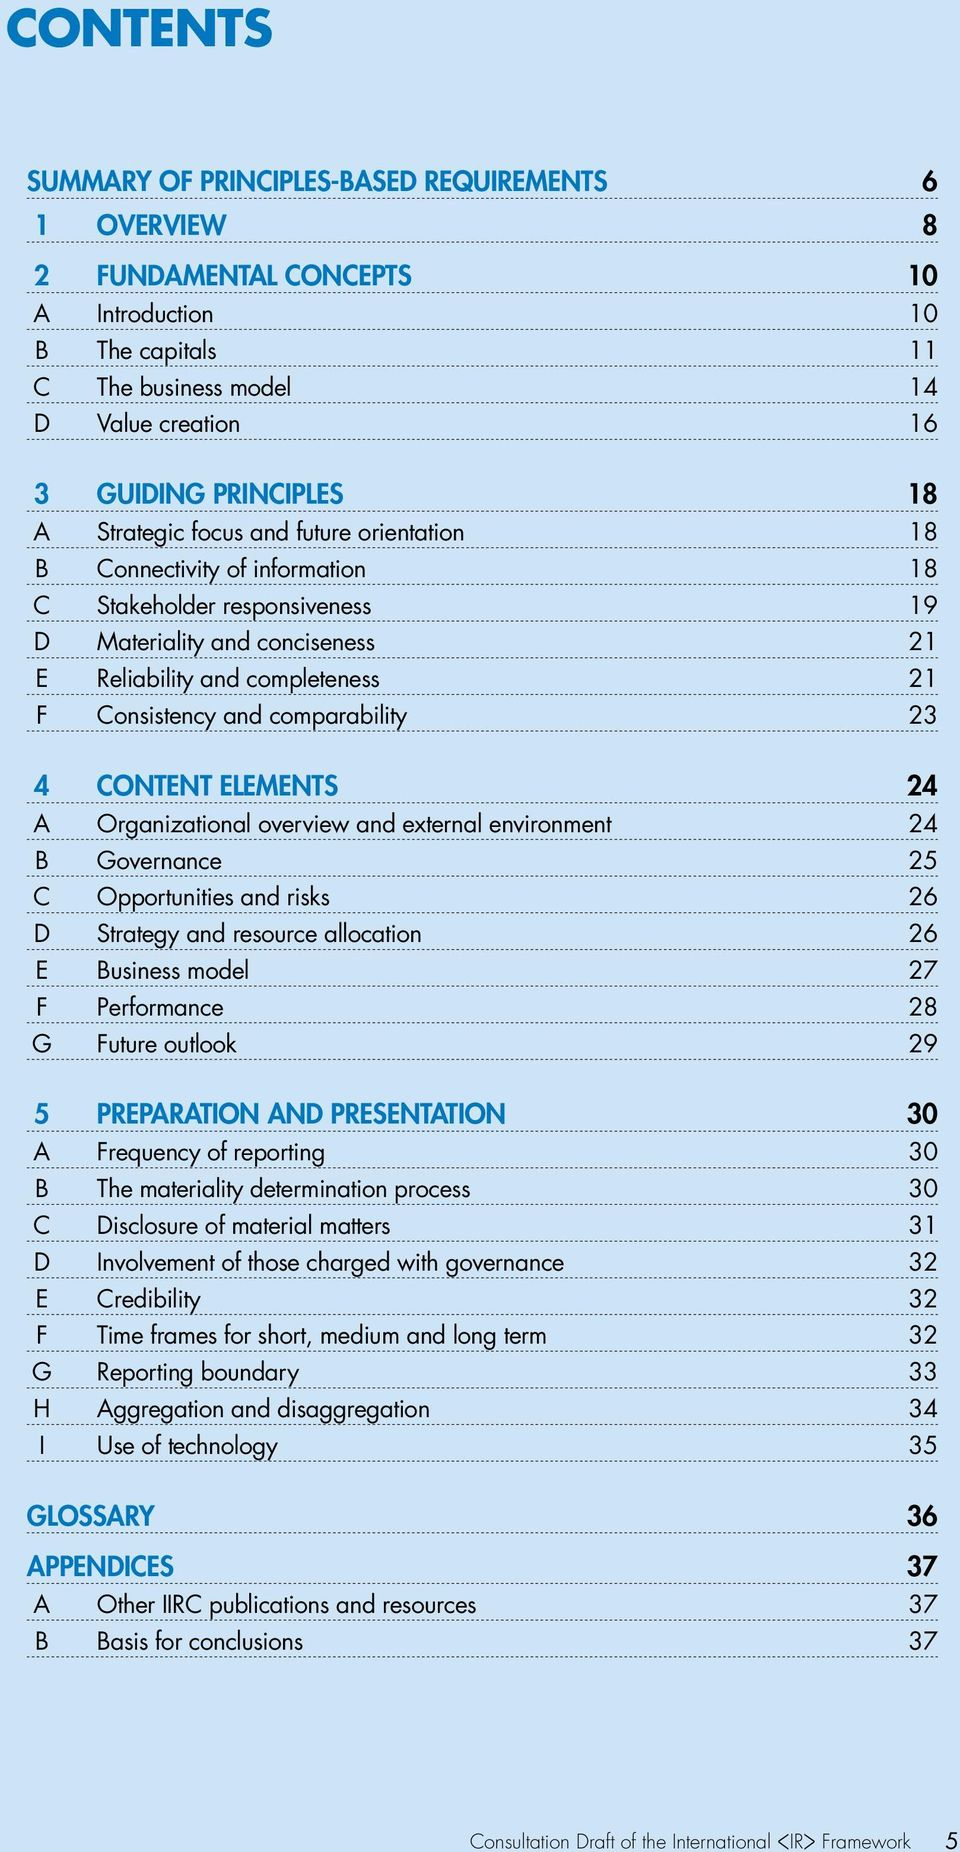 comparability 23 4 CONTENT ELEMENTS 24 A Organizational overview and external environment 24 B Governance 25 C Opportunities and risks 26 D Strategy and resource allocation 26 E Business model 27 F